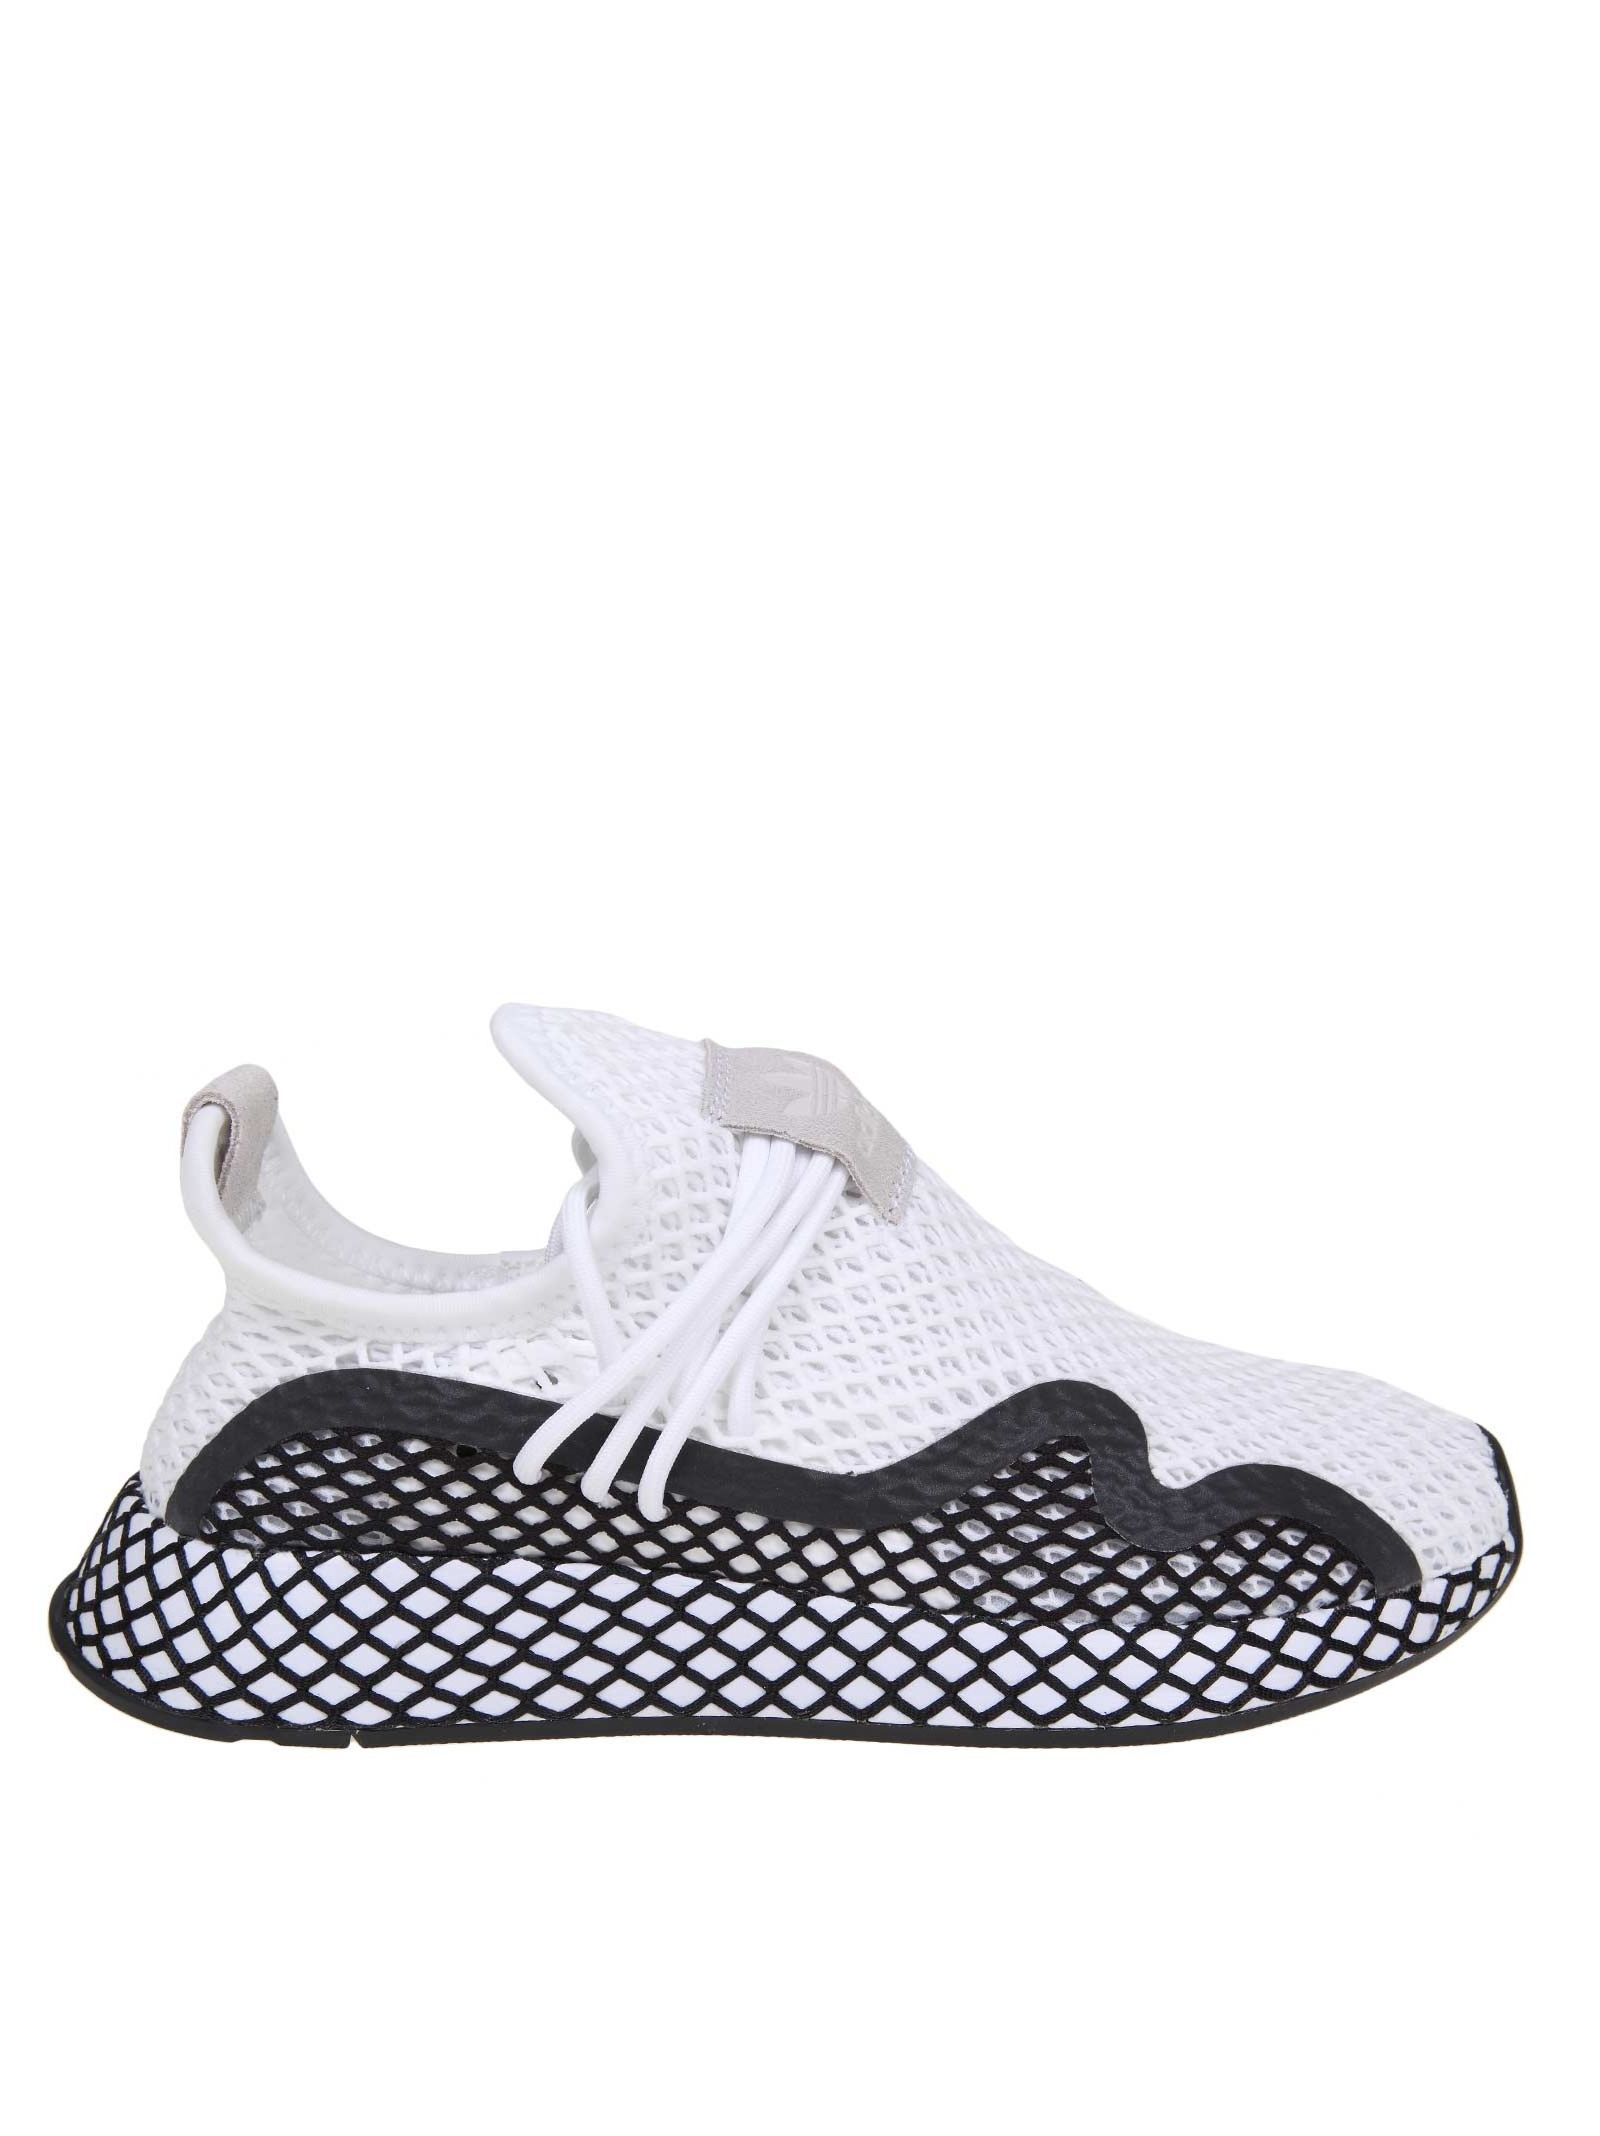 Adidas Originals Adidas Deerupt S In Strech White And Black Fabric ... cc8a15810